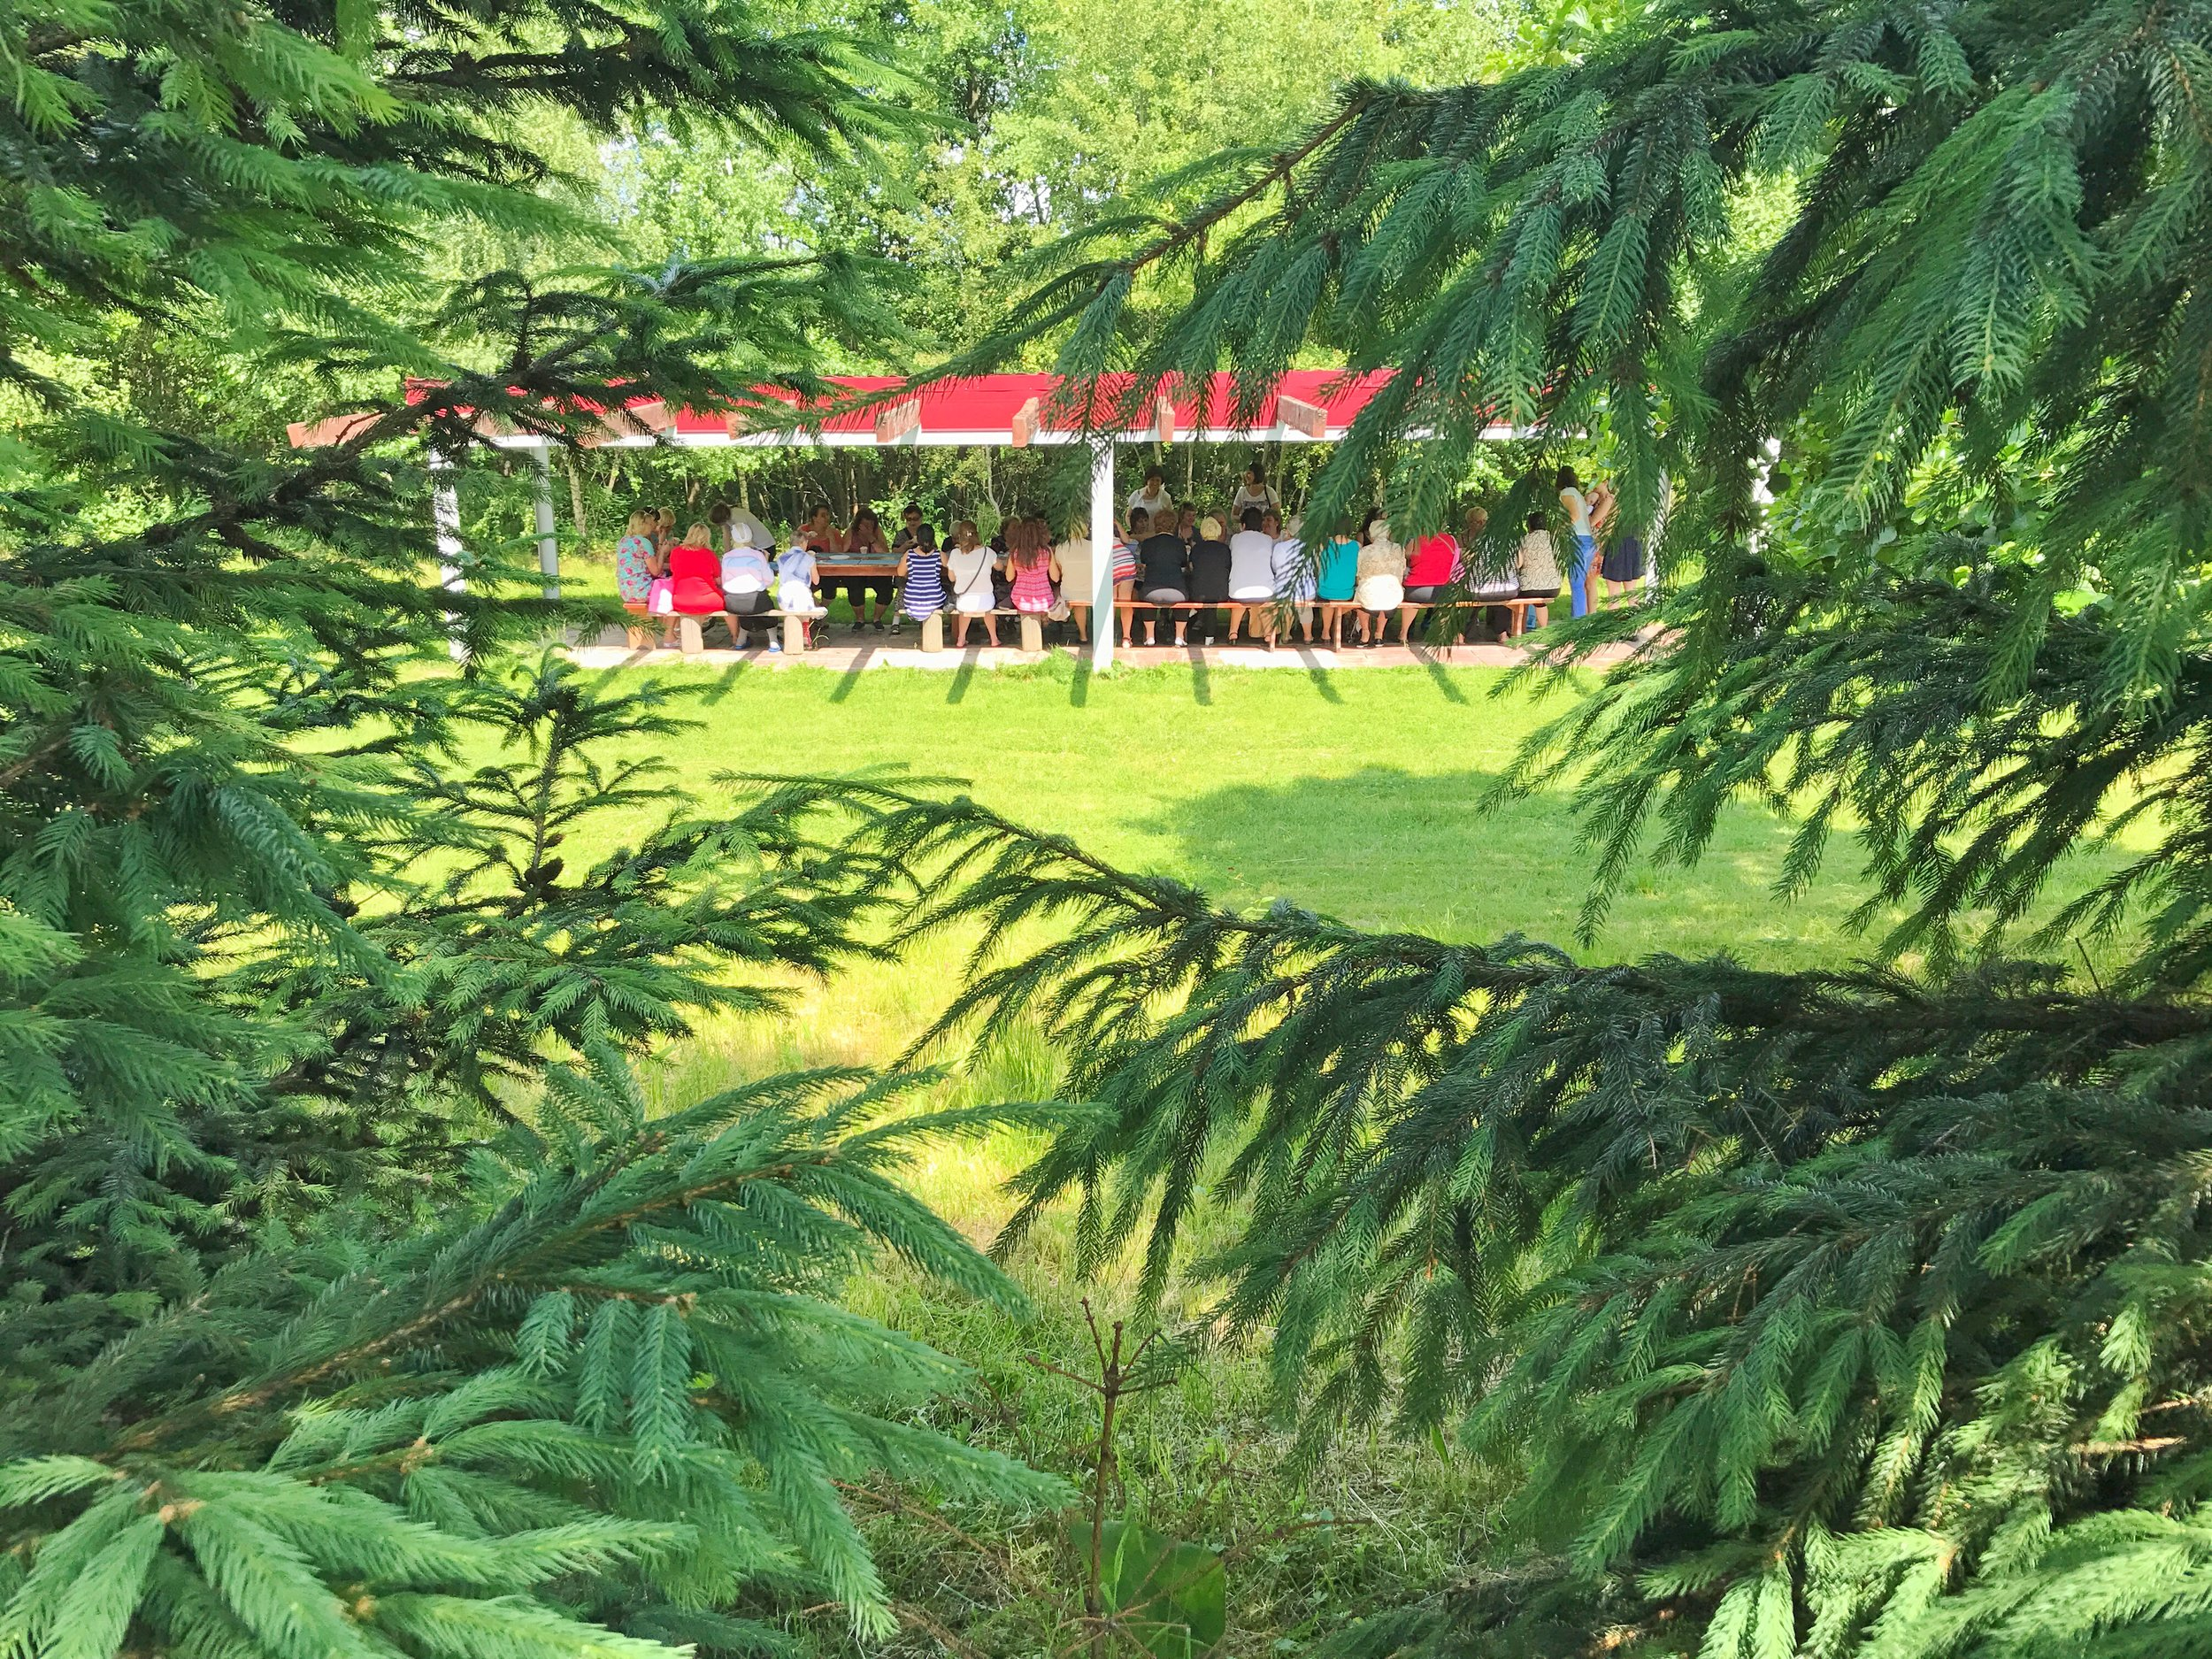 Some of their classes took place at a covered pavillion outside....